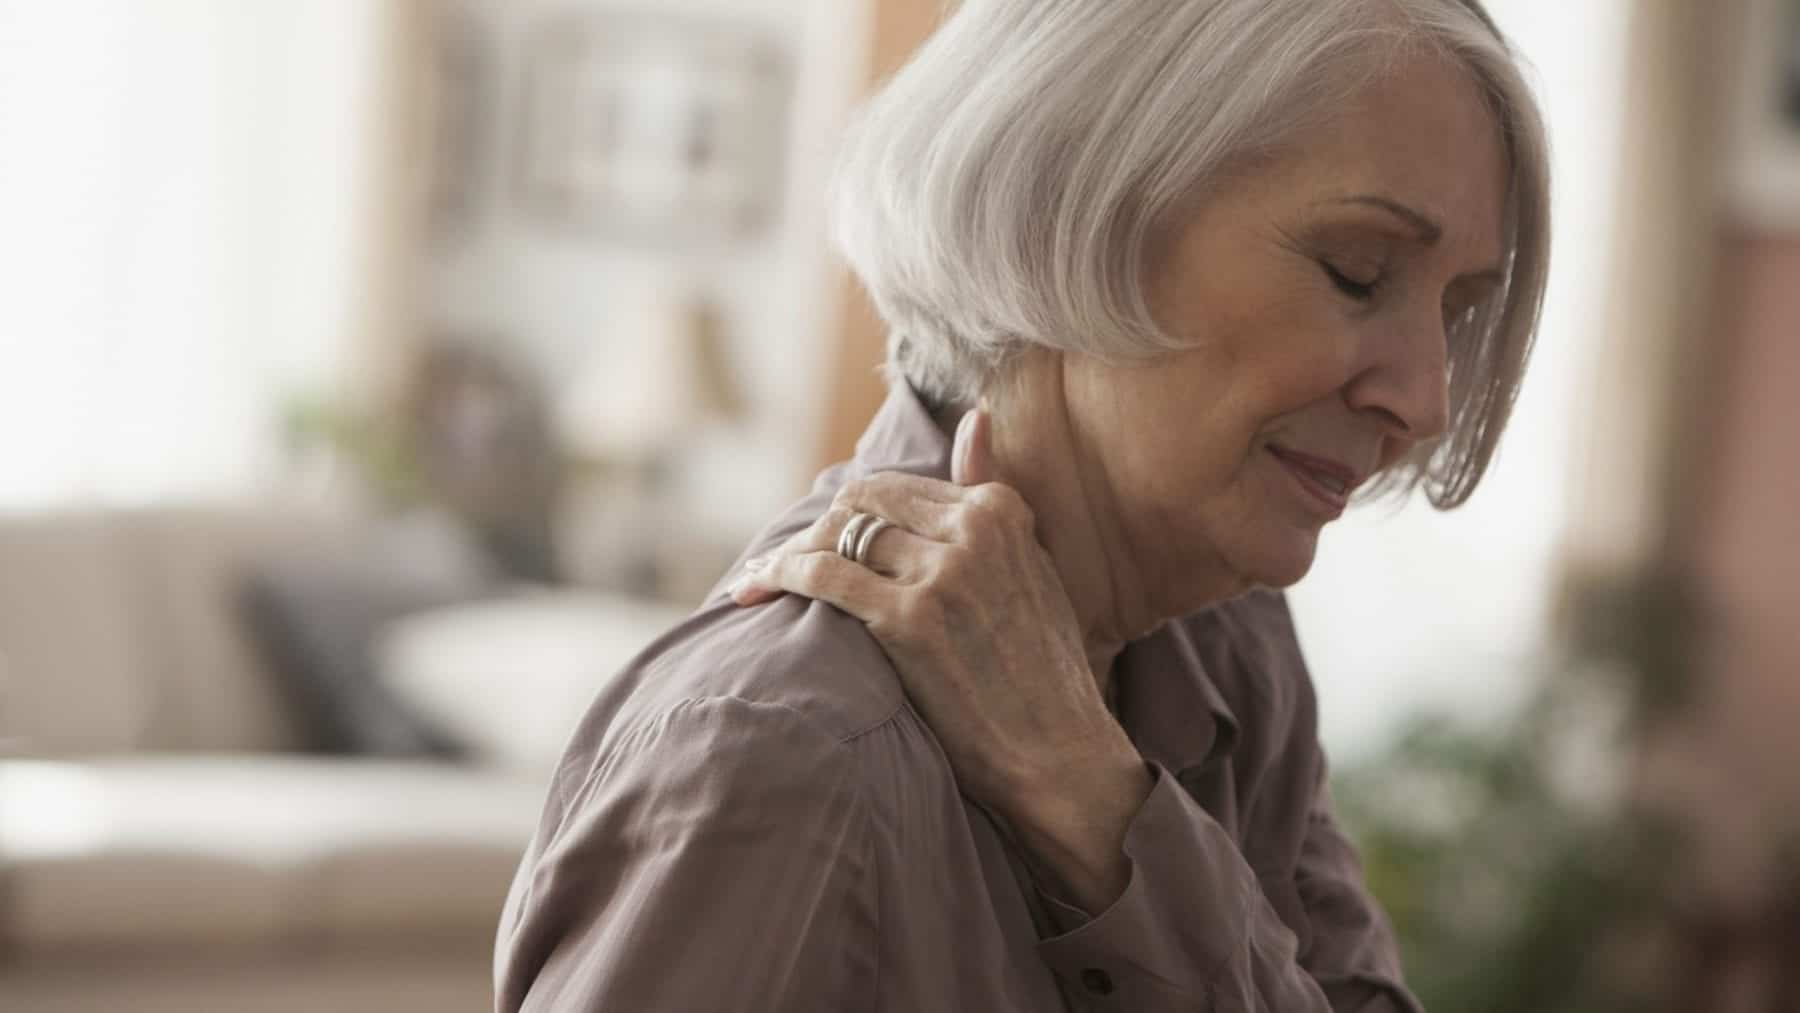 Neck Pain | Connecticut Disc and Laser Therapy Centers | Dr. James Dalfino